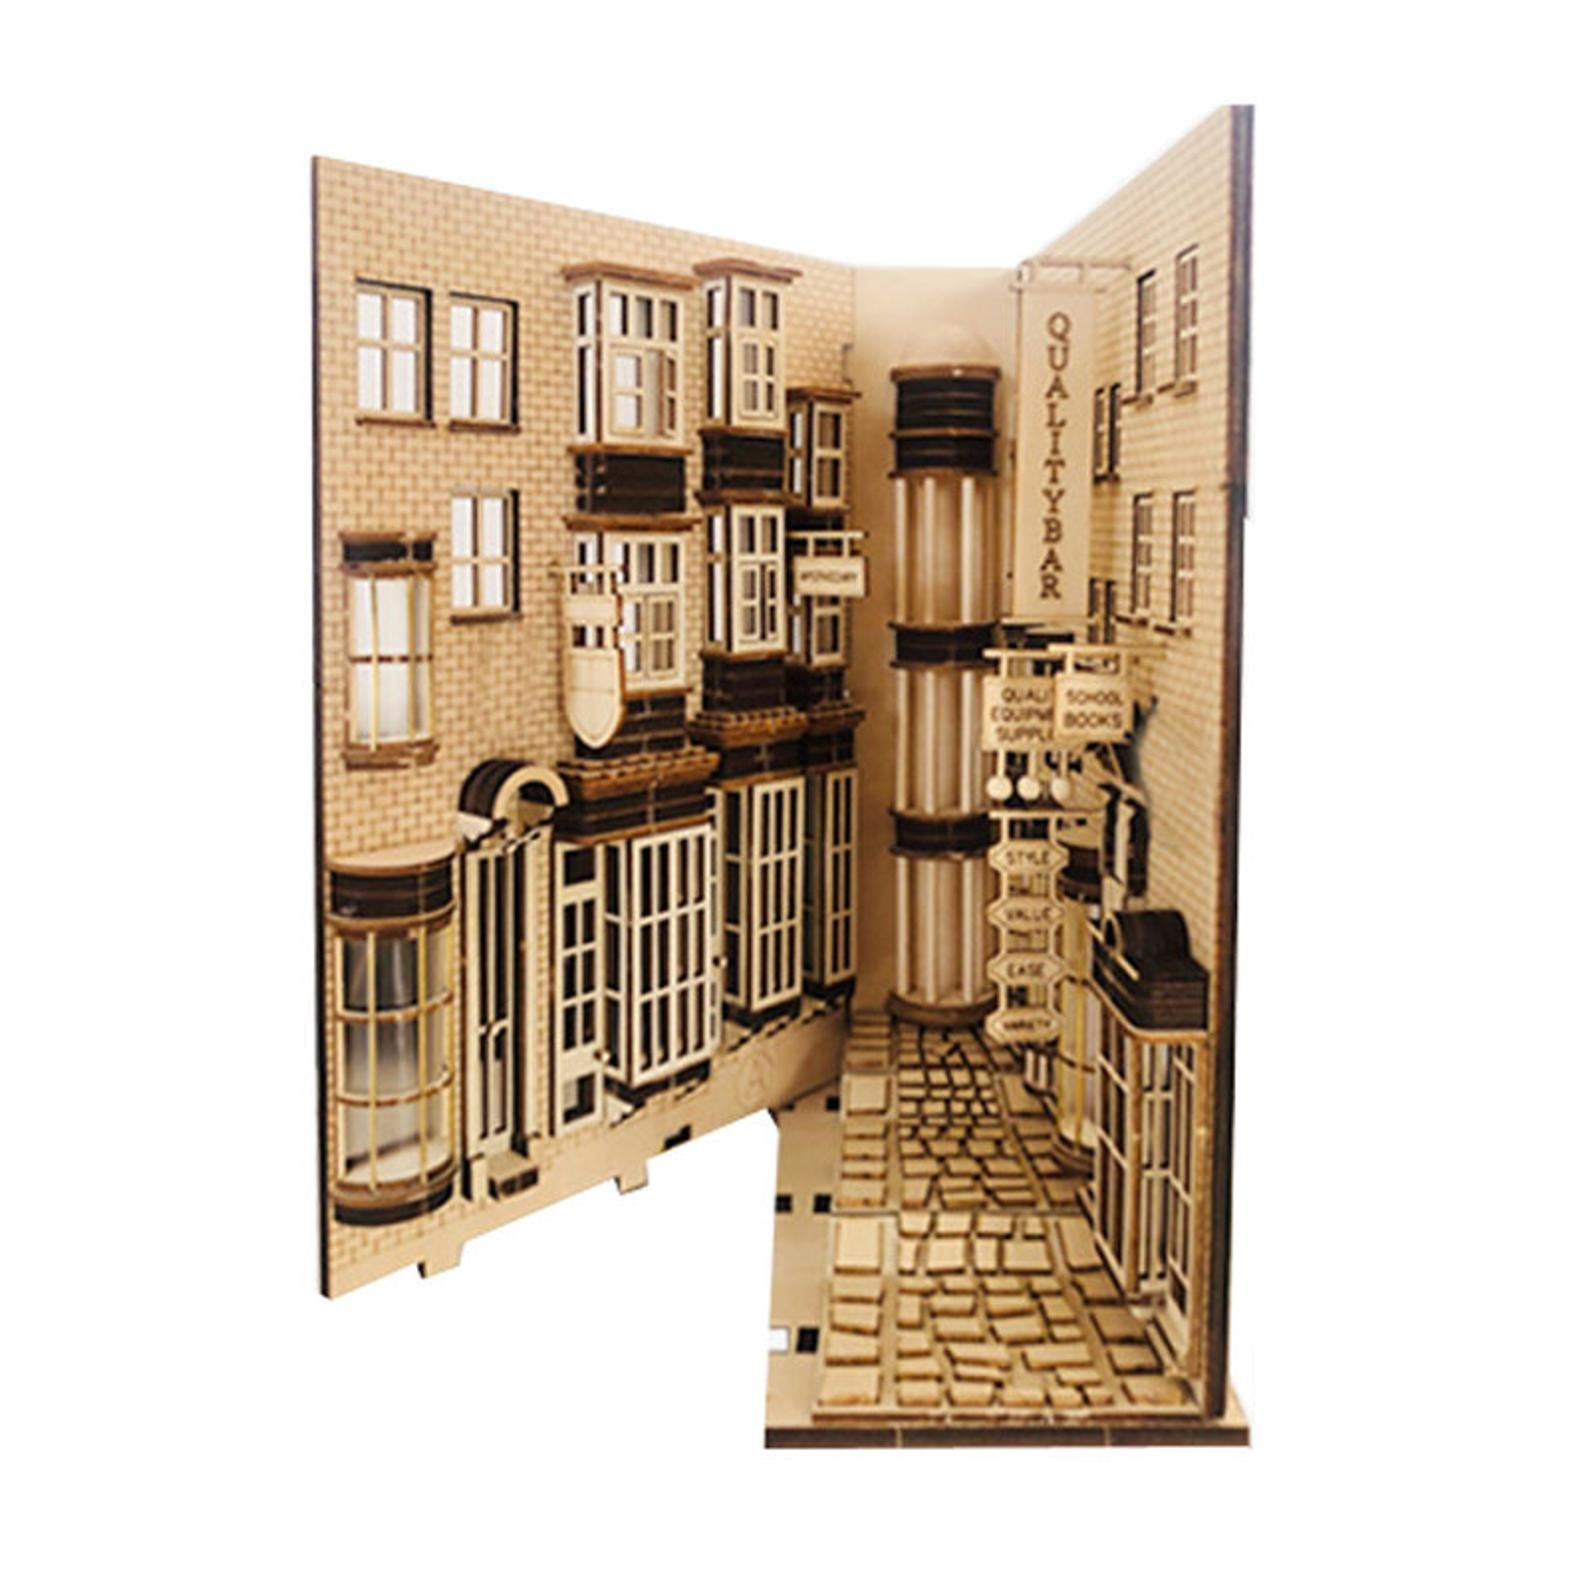 Alley Book Nook Book Shelf Insert Bookcase With Light Etsy In 2021 Book Nooks Wooden Books Book Decor